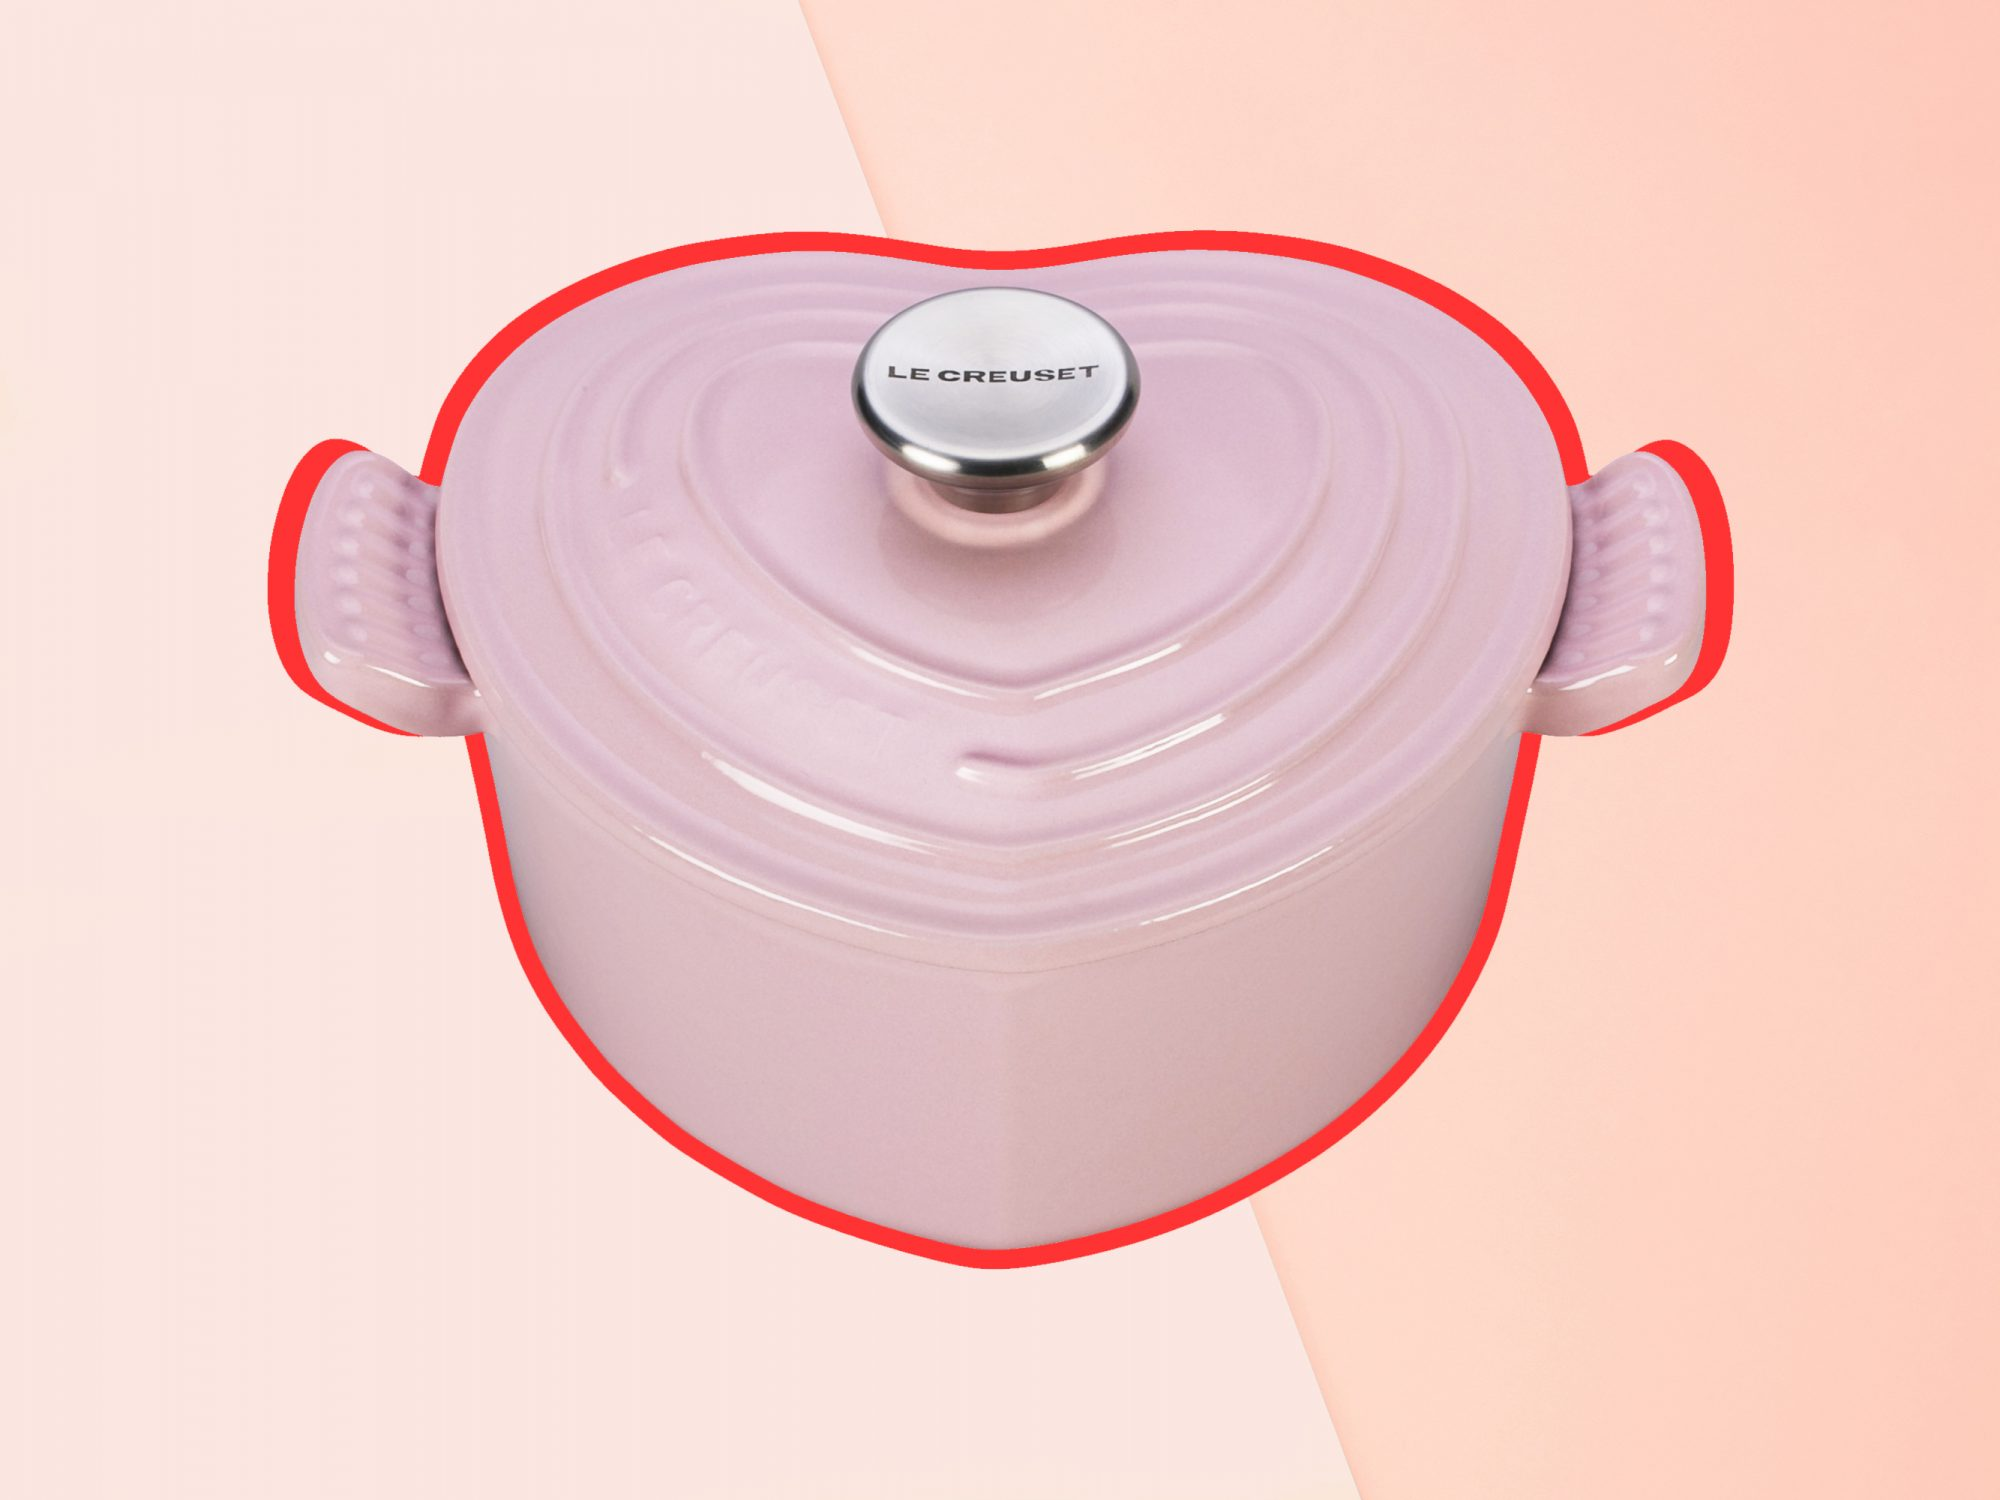 Le Creuset Just Slashed Prices by 40 Percent for Valentine's Day